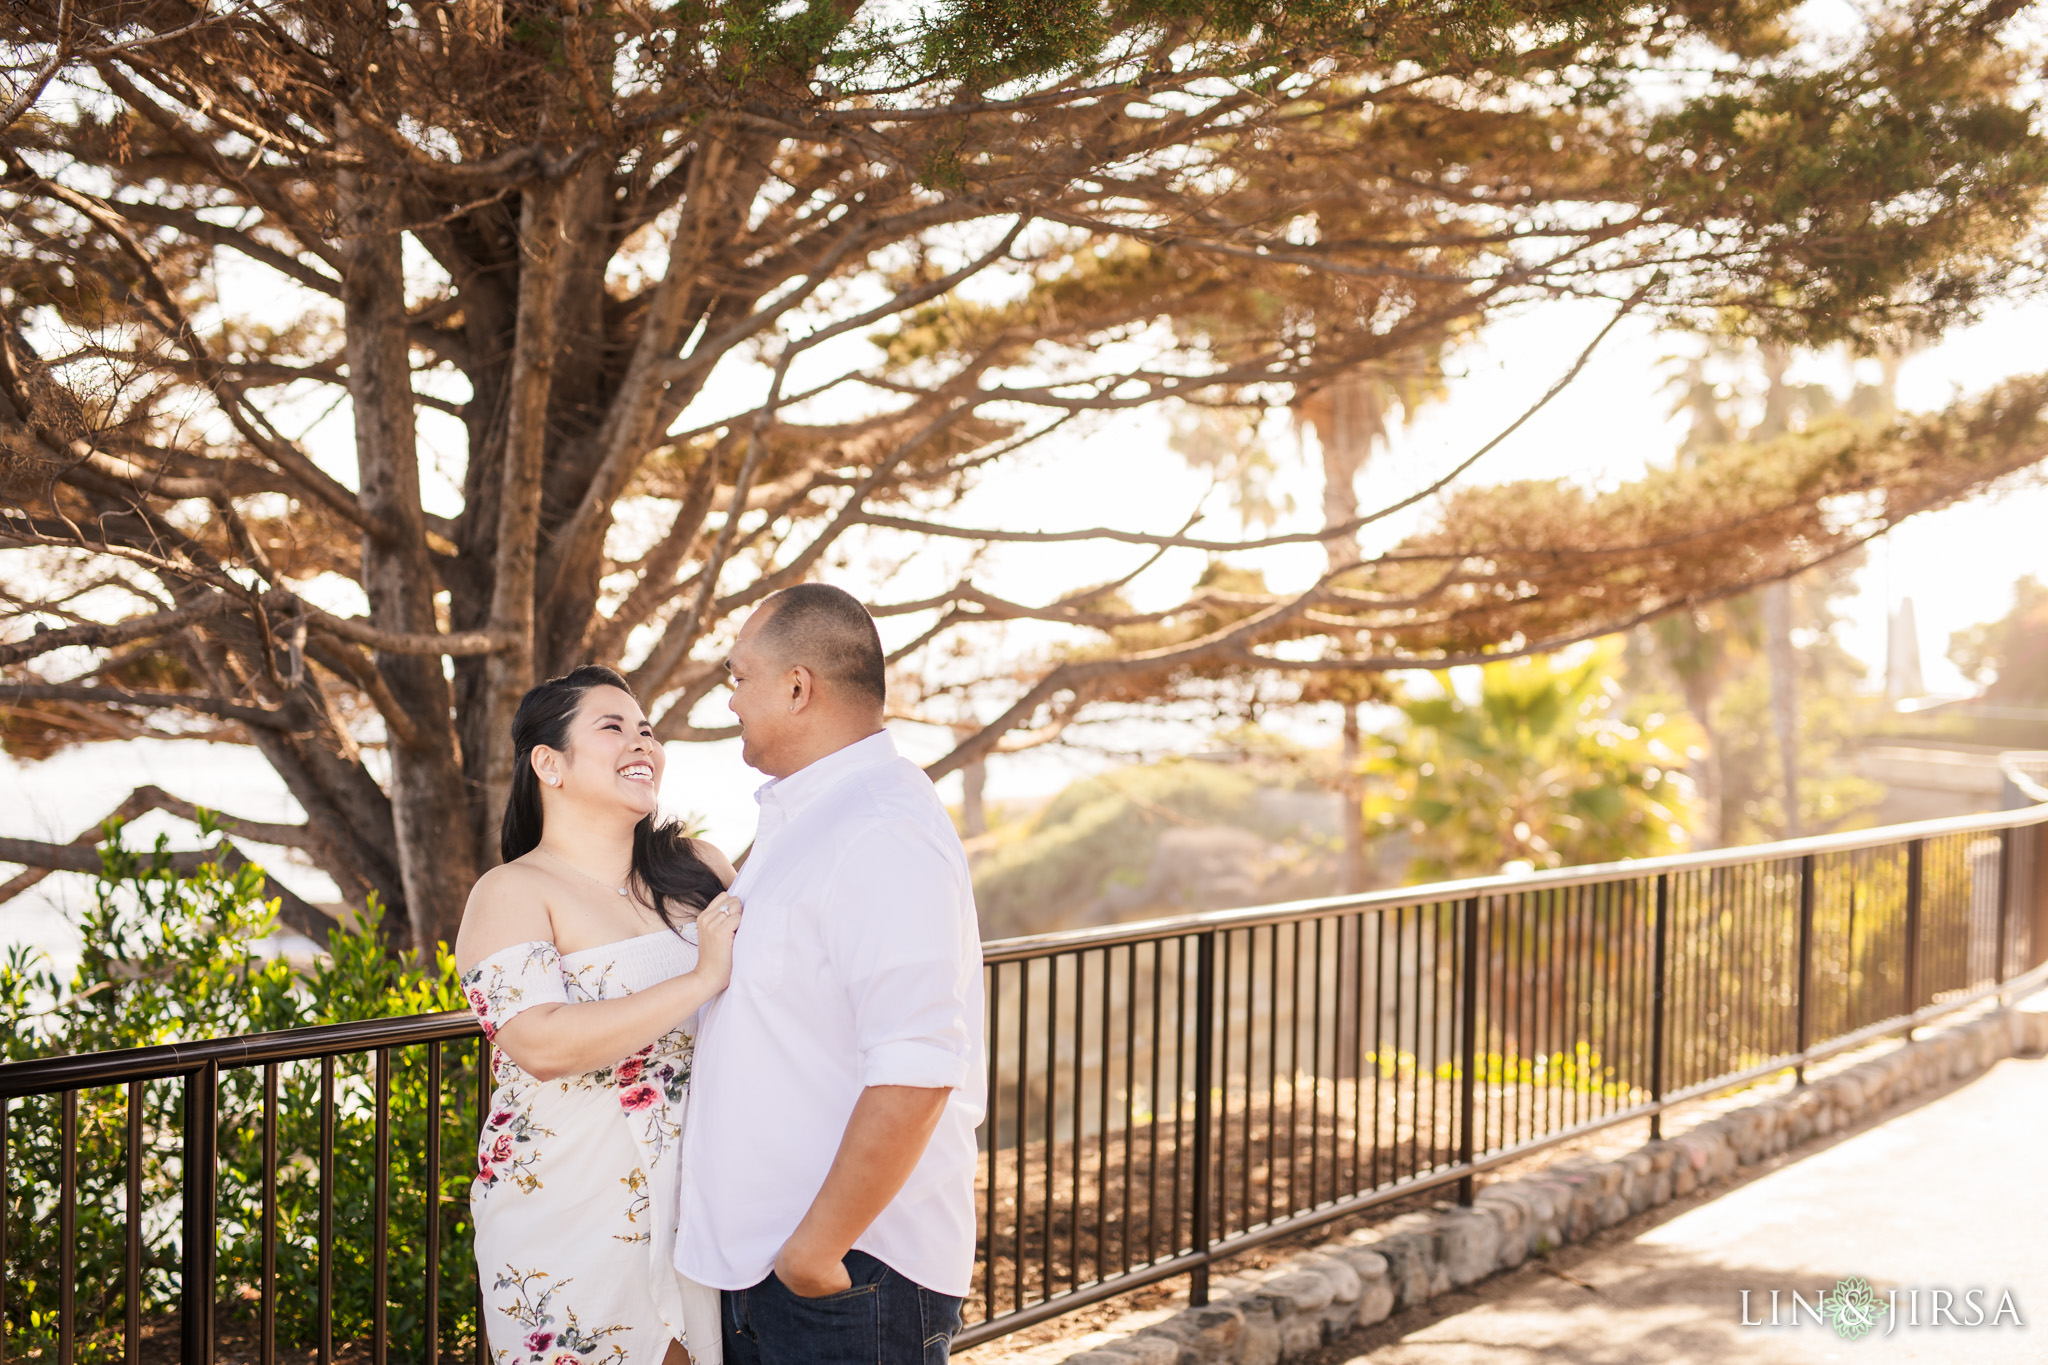 zls Heisler Park Orange County Engagement Photographer